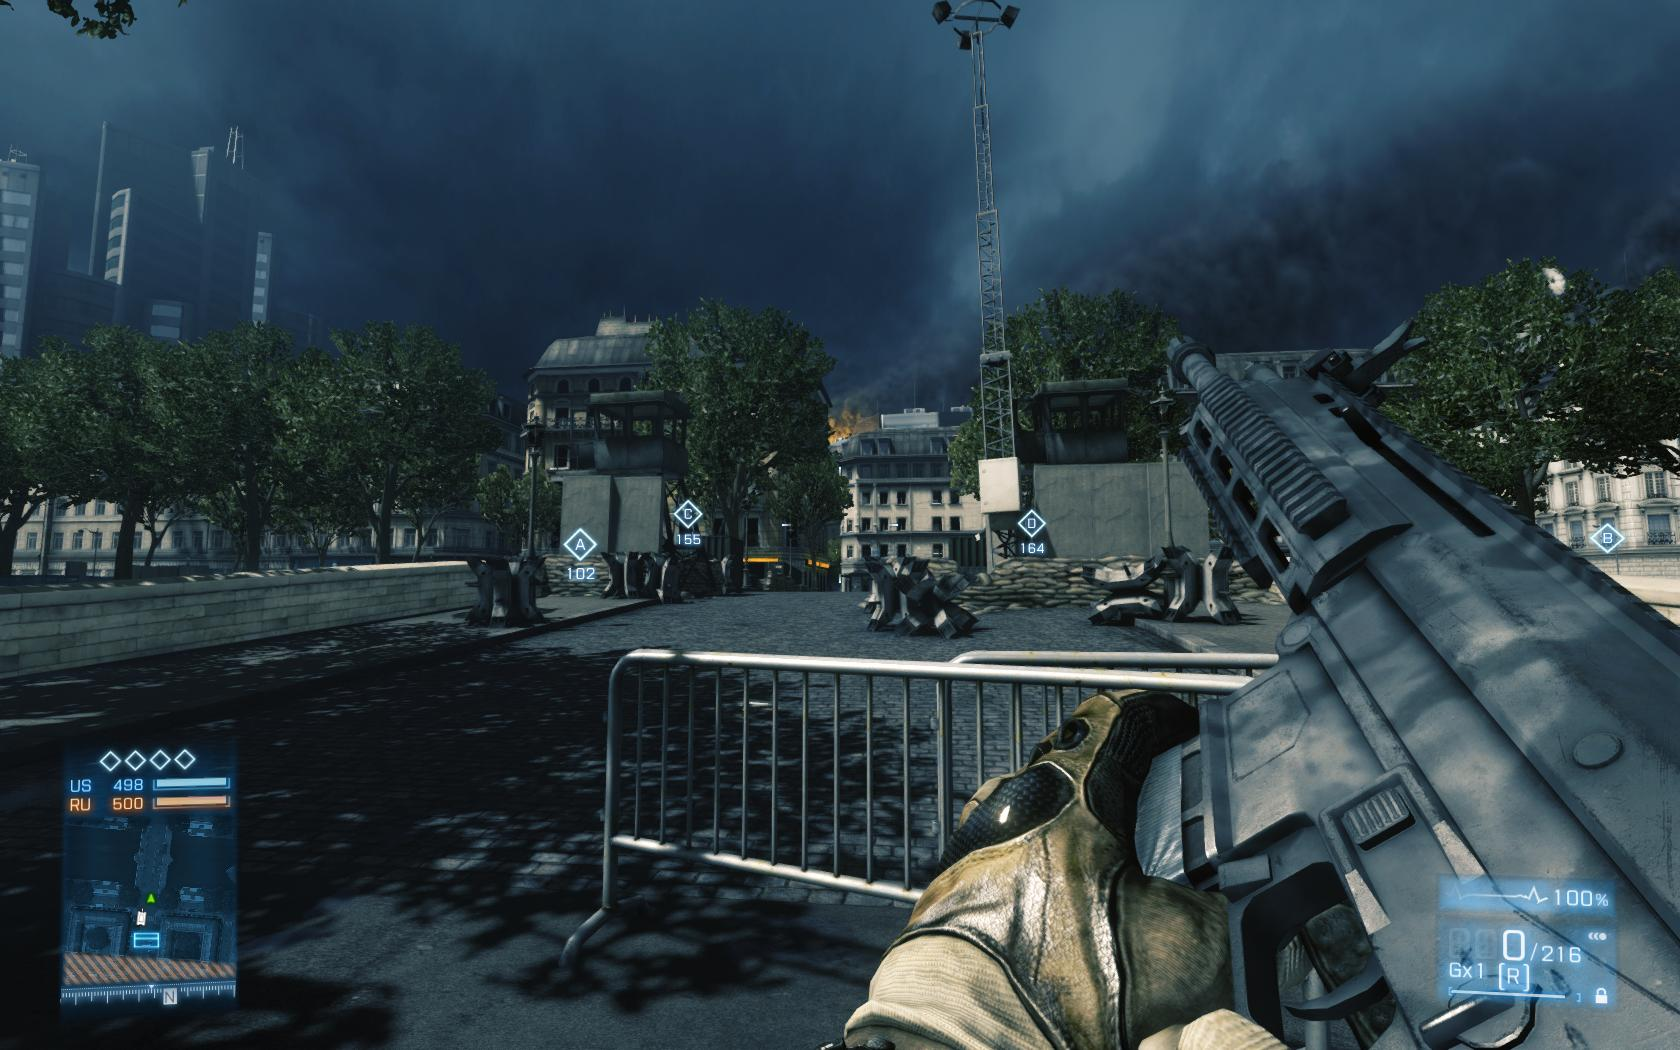 http://www.imfdb.org/images/b/bf/Bf3_acr_reload_2.jpg